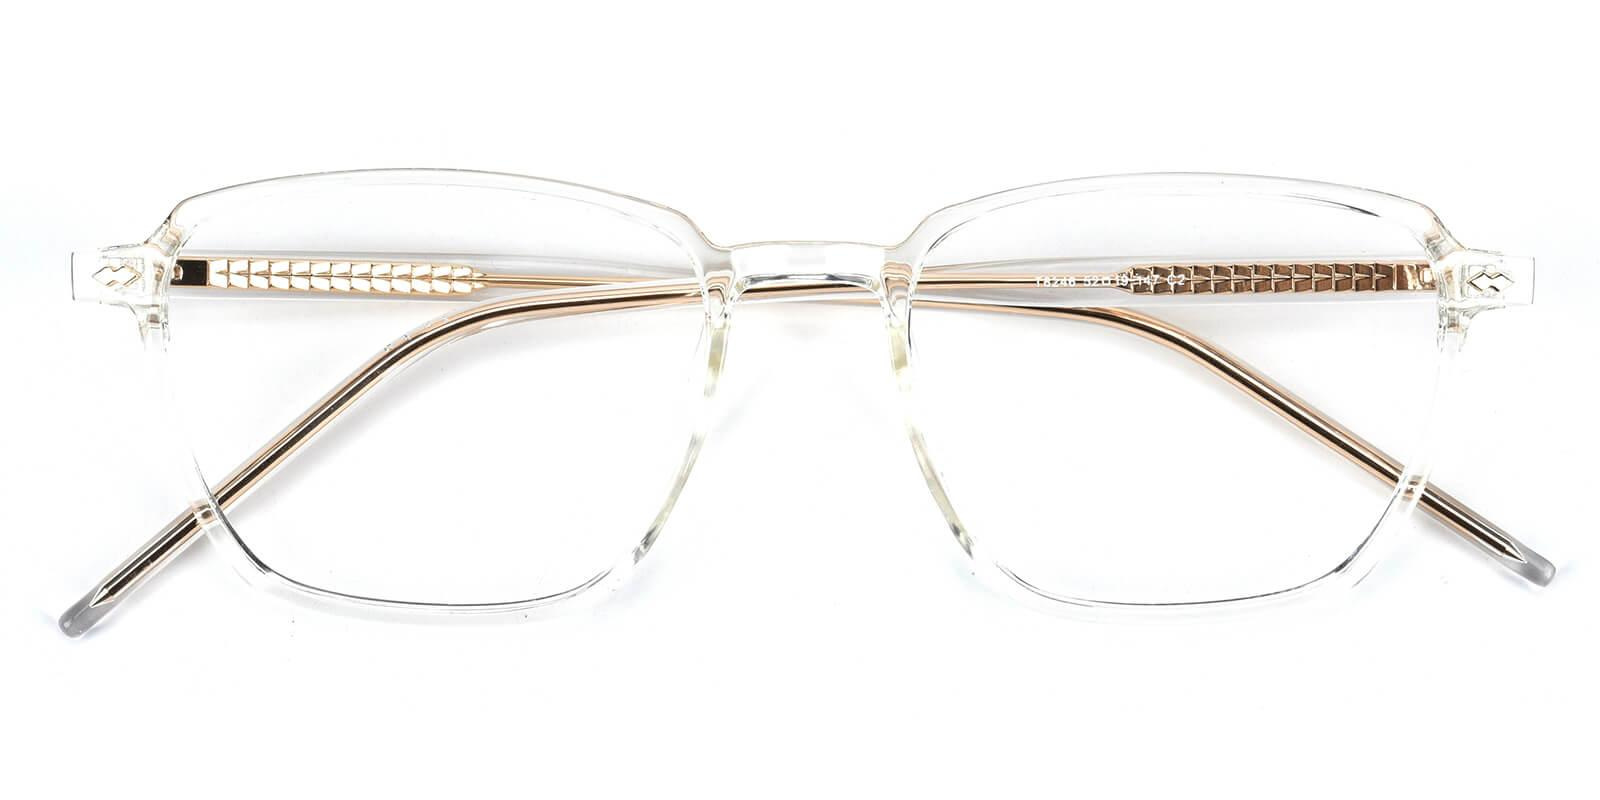 Rolita-Translucent-Square-Acetate / TR-Eyeglasses-detail